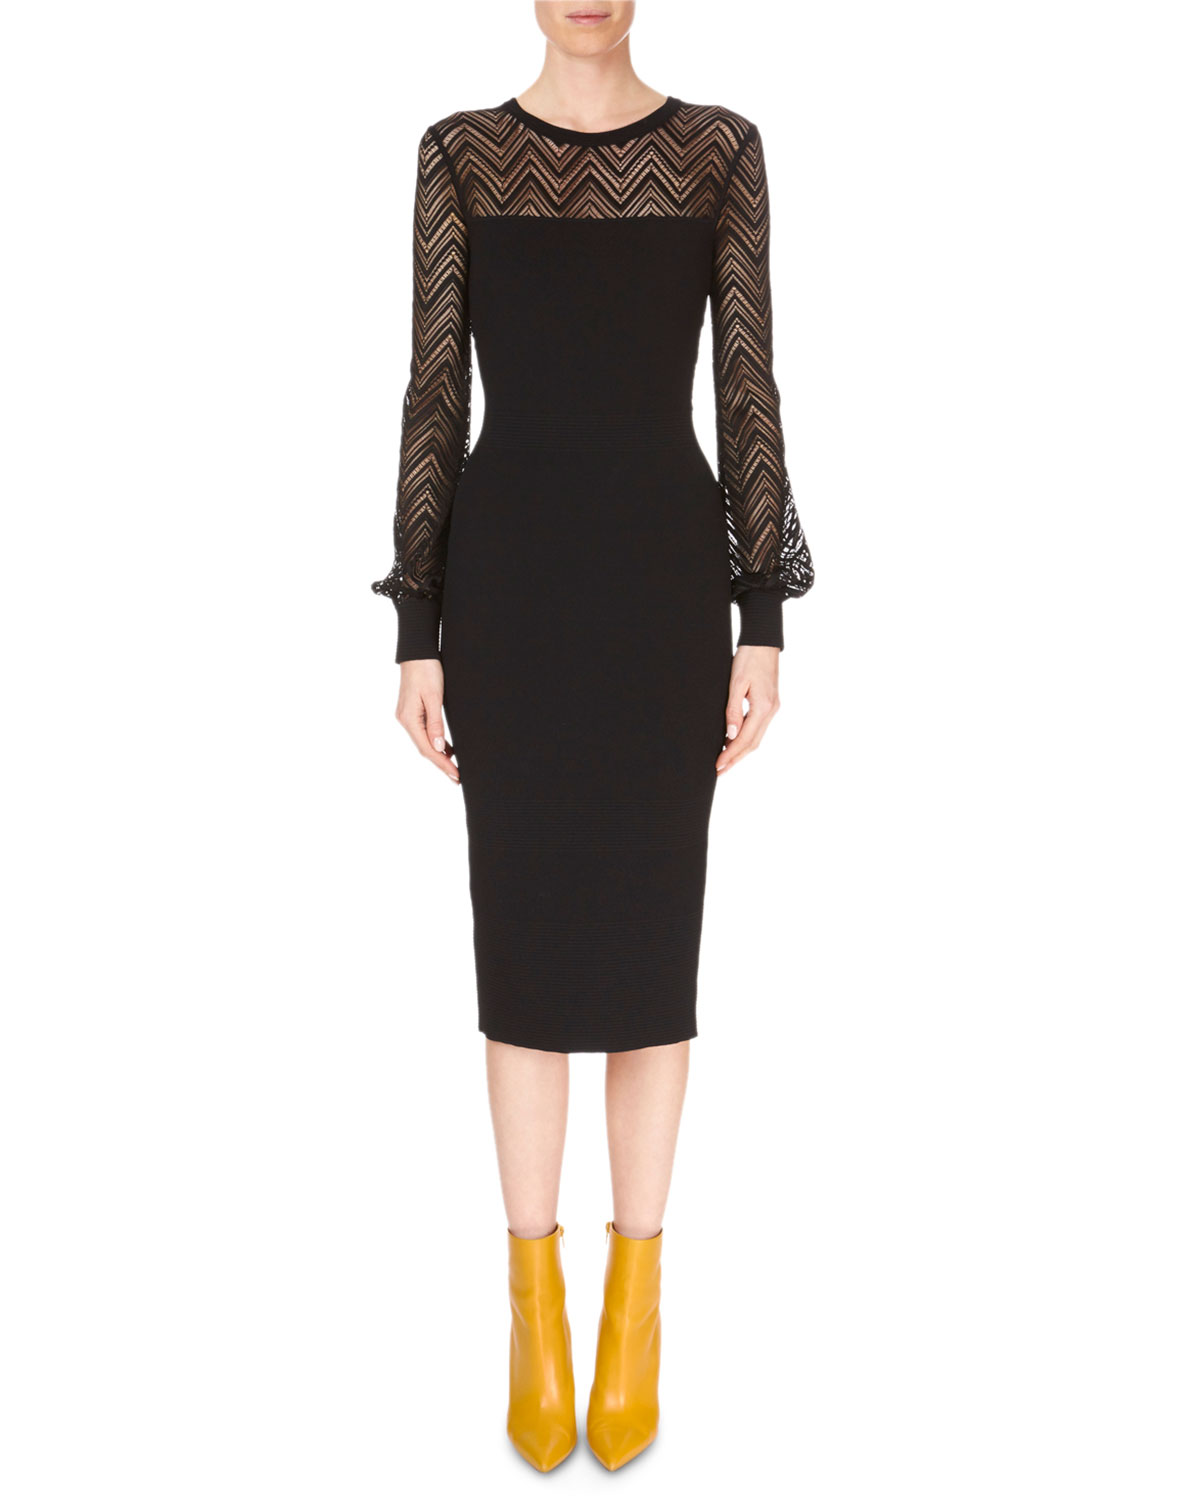 728adce145d7 Roland Mouret Long-Sleeve Chevron-Lace Fitted Midi Dress